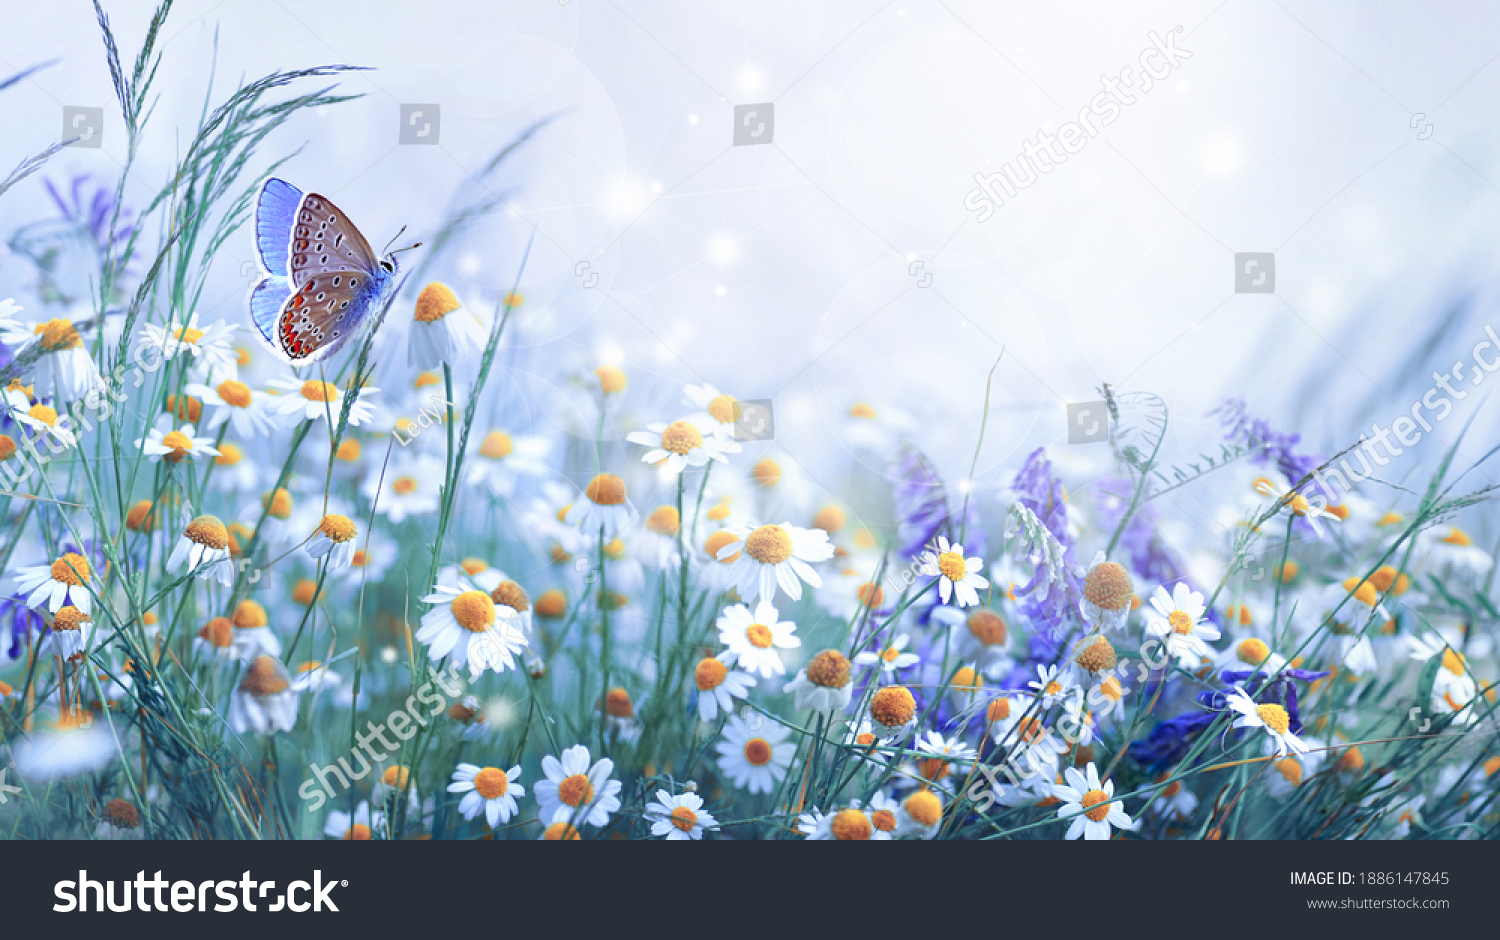 Beautiful wild flowers daisies and butterfly in morning cool haze in nature spring close-up macro. Delightful airy artistic image beauty summer nature. #1886147845